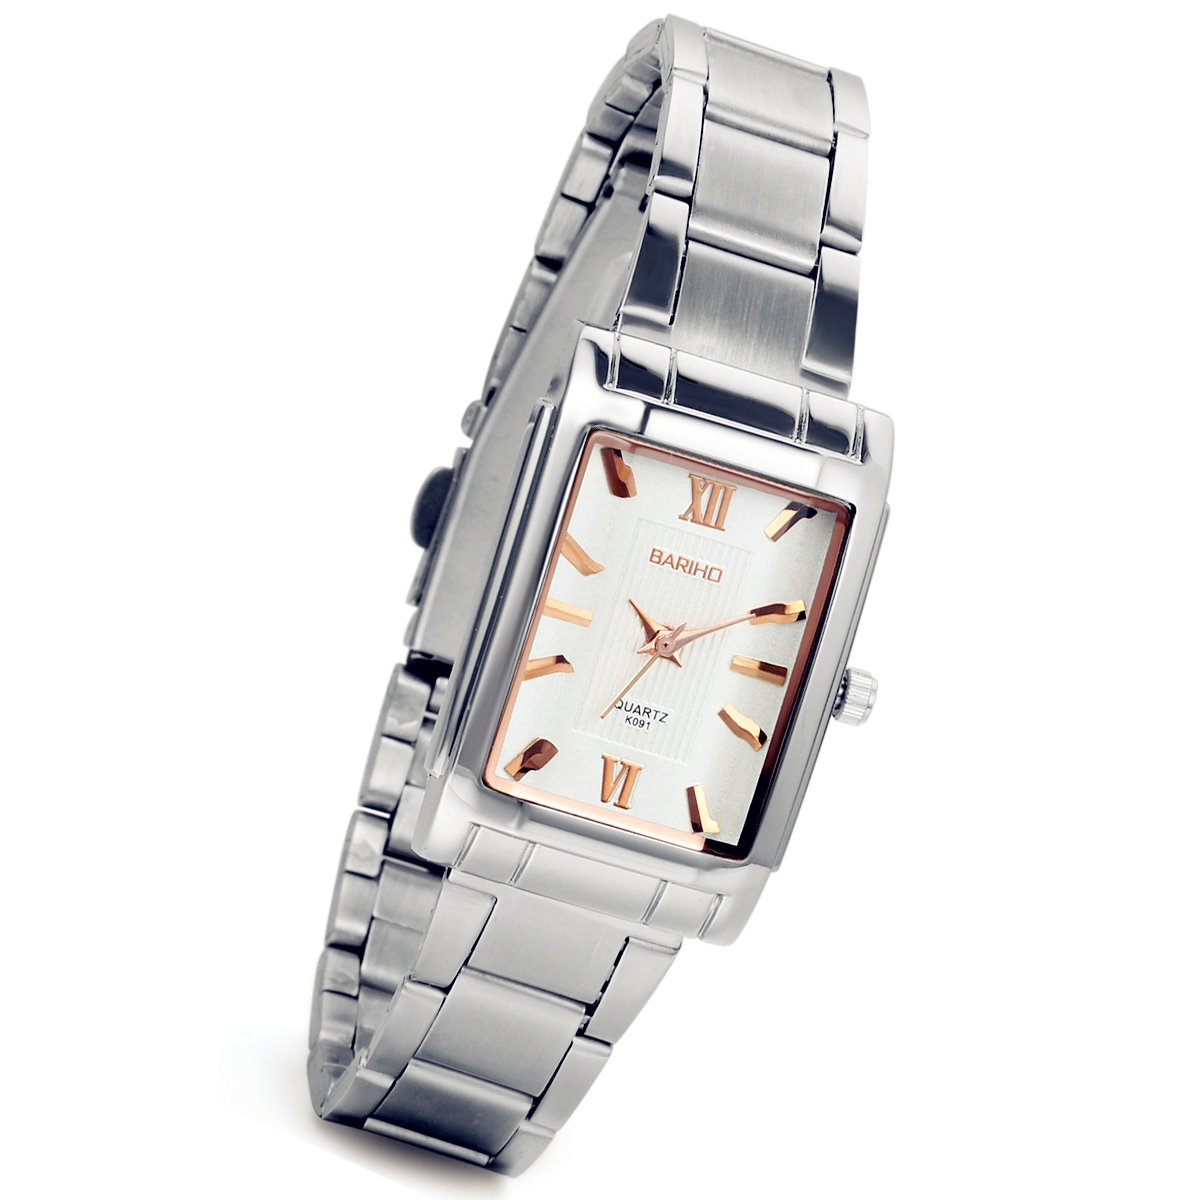 dee589039ea Amazon.com  Women s Square Watch Silver Bracelet Bangle White Dial Elegant  Design Fashion Wrist Watches with Stainless Steel Band  Watches